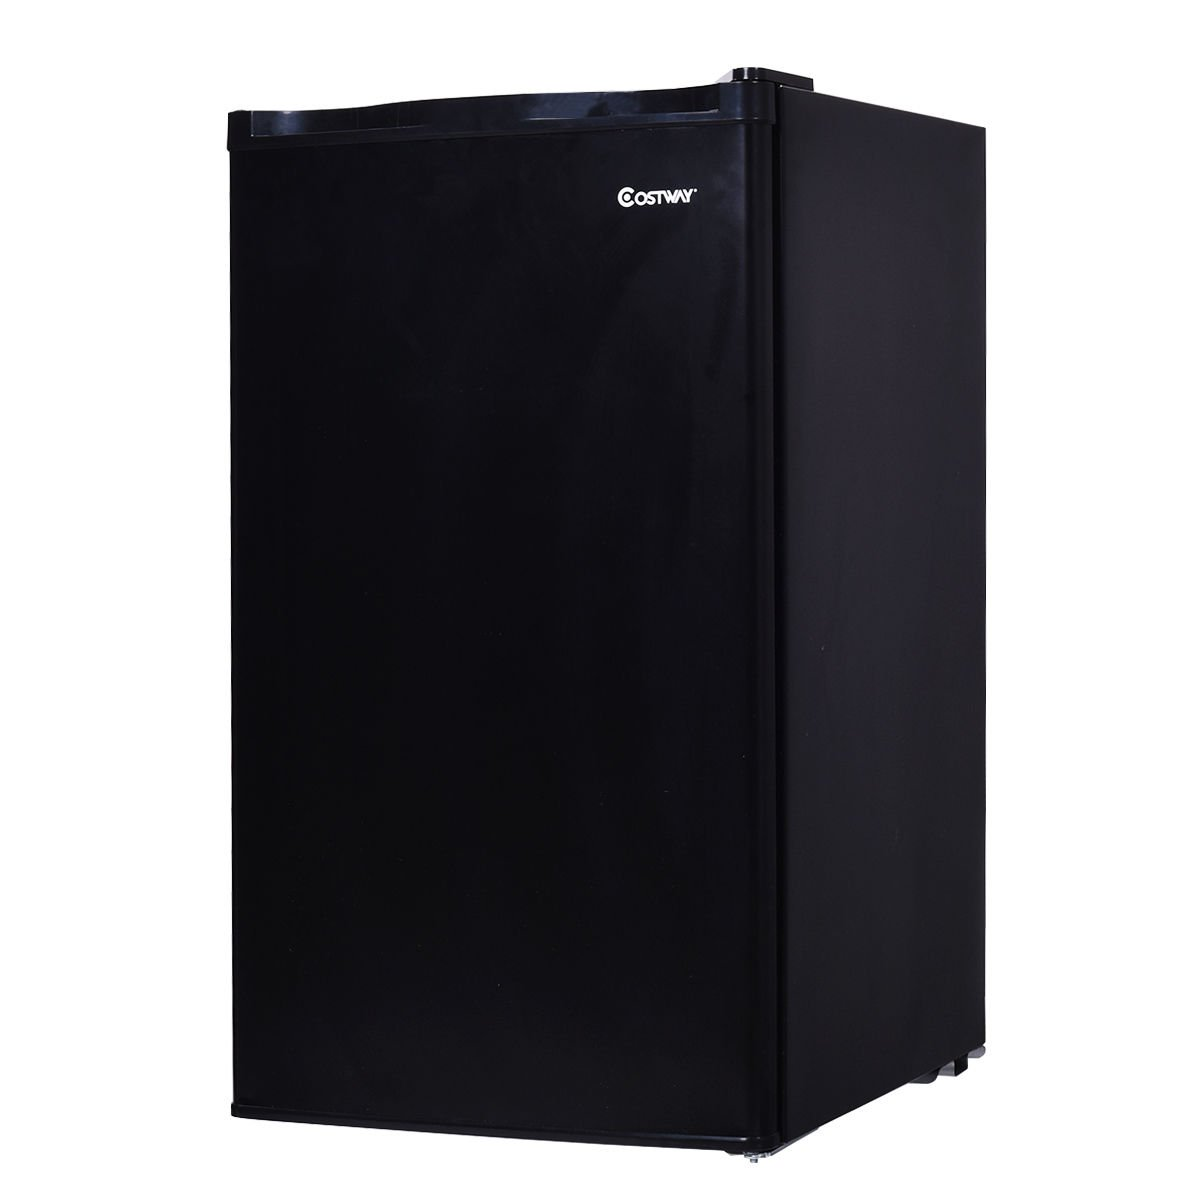 Costway 3.2 Cubic Feet. Compact Refrigerator Mini Dorm Small Fridge Freezer Reversible Door Black